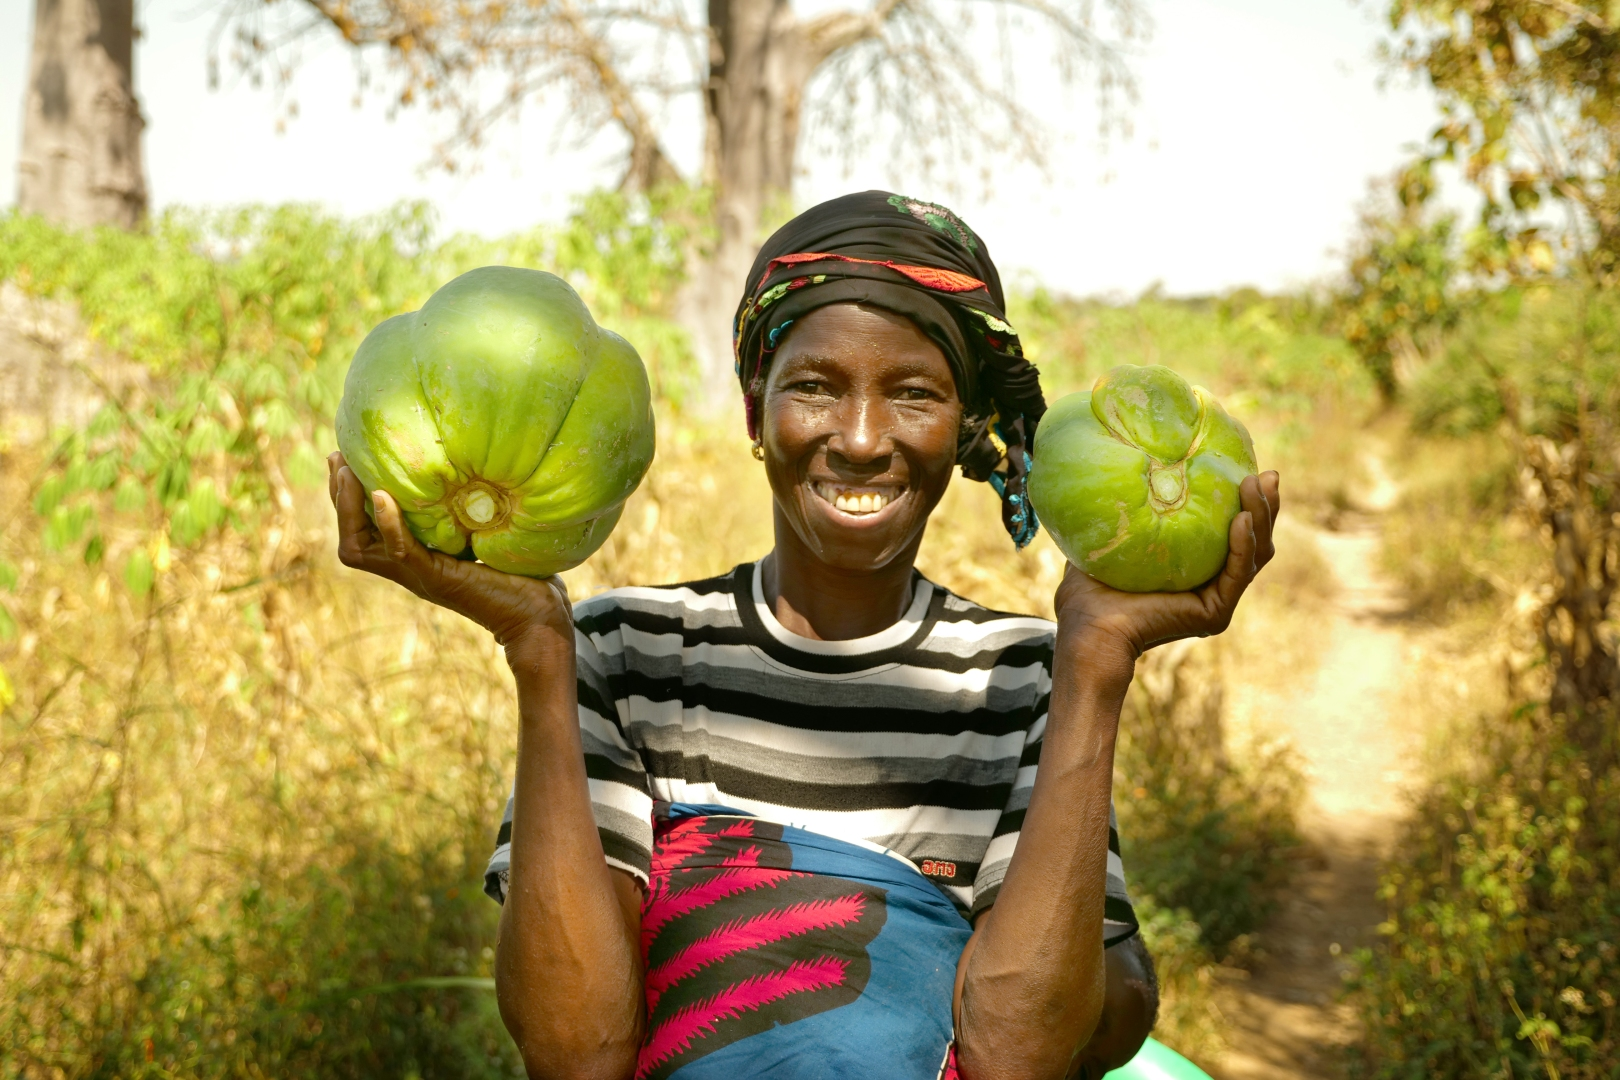 Mariam Tio holds two melons in her hands